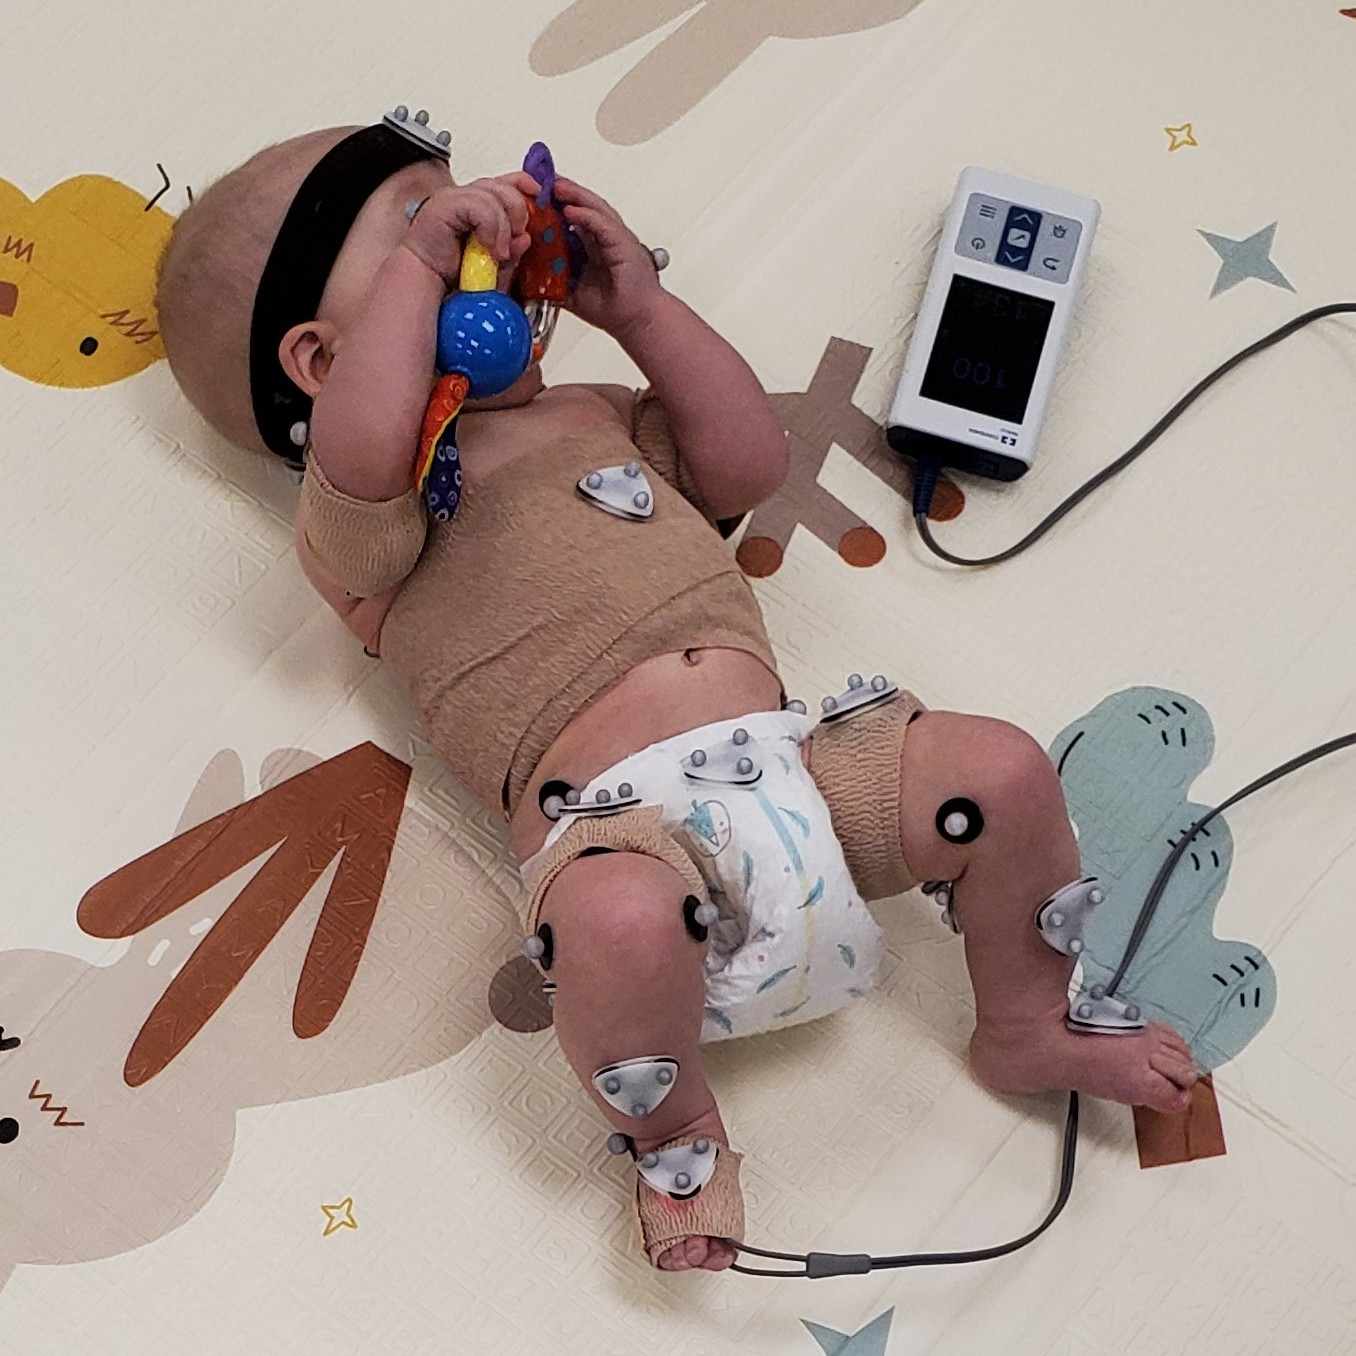 infant with sensors on play mat